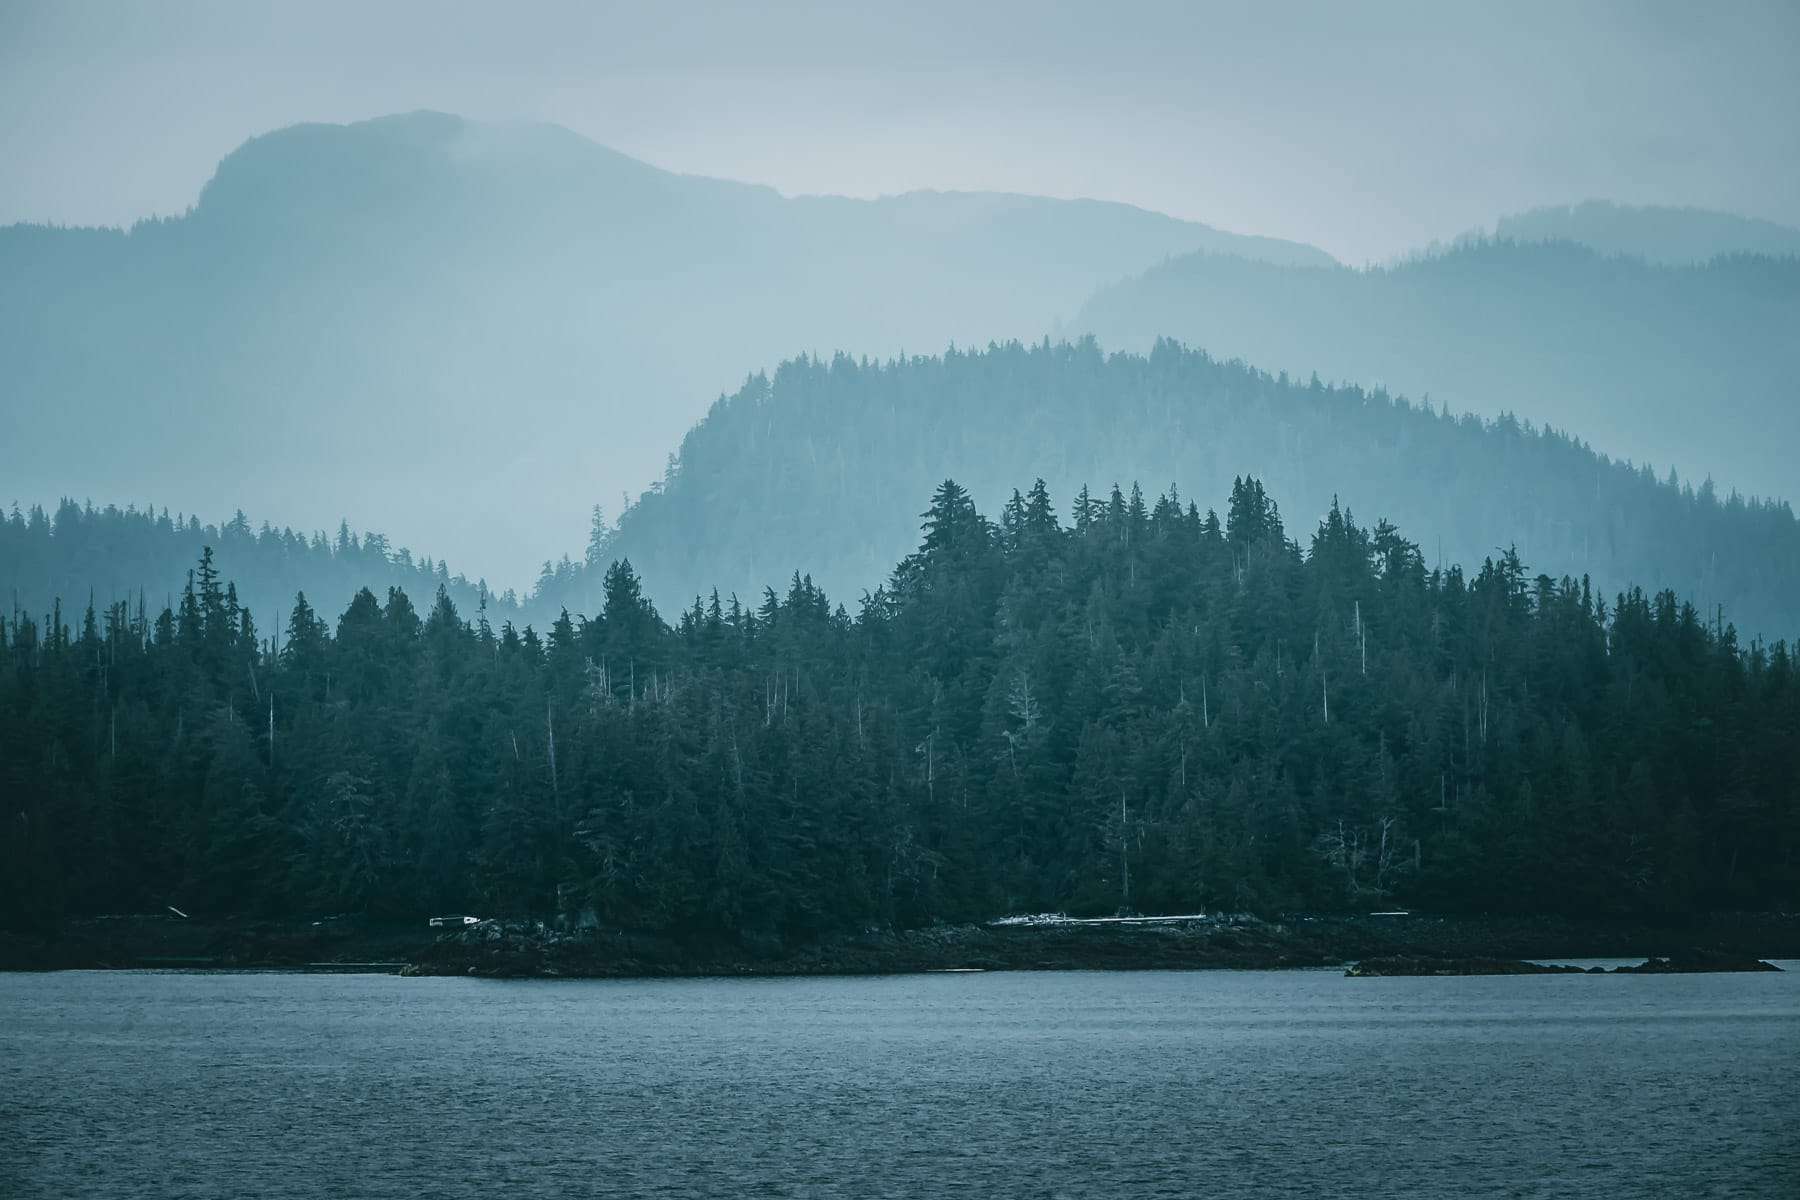 Morning haze over the forested islands along the Tongass Narrows near Ketchikan, Alaska.